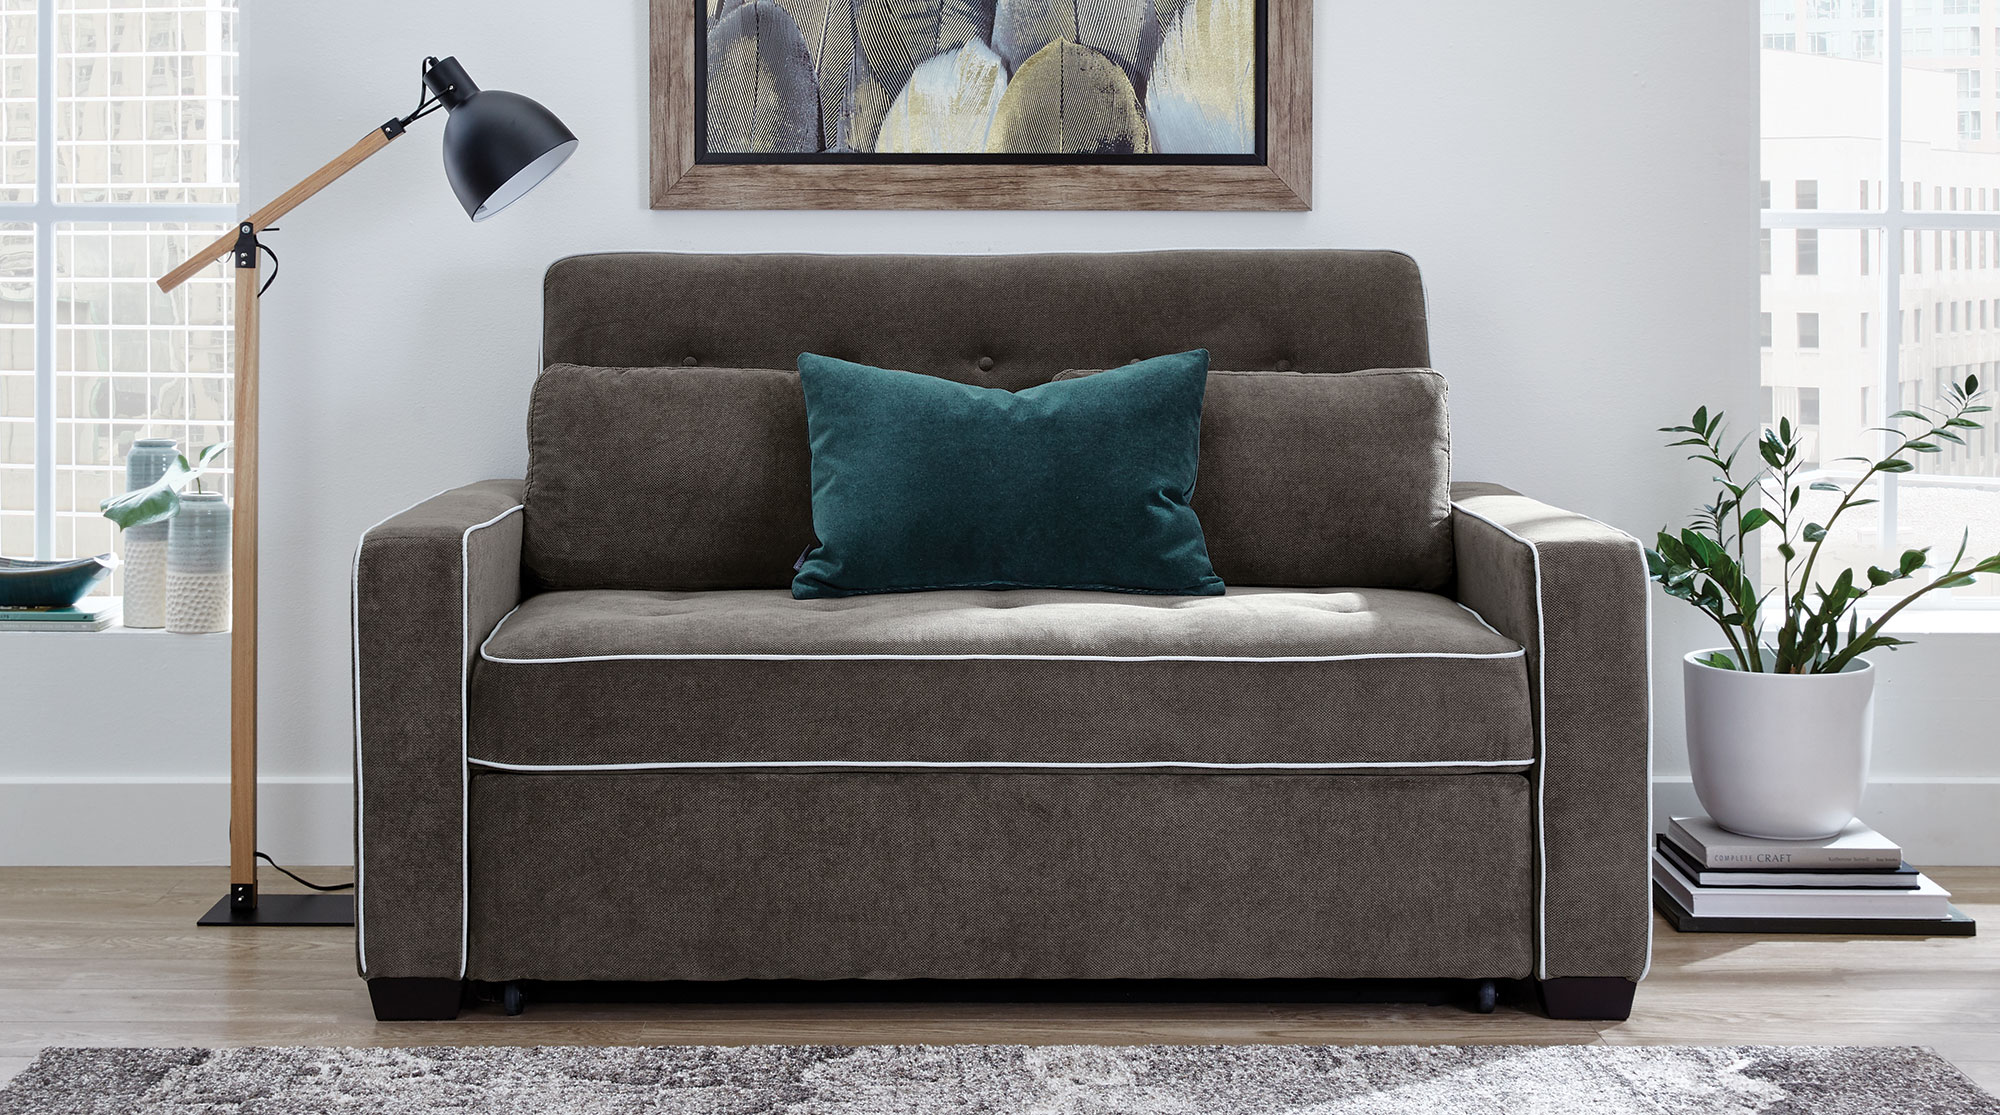 Augustine-sofabed-small-spaces-couch